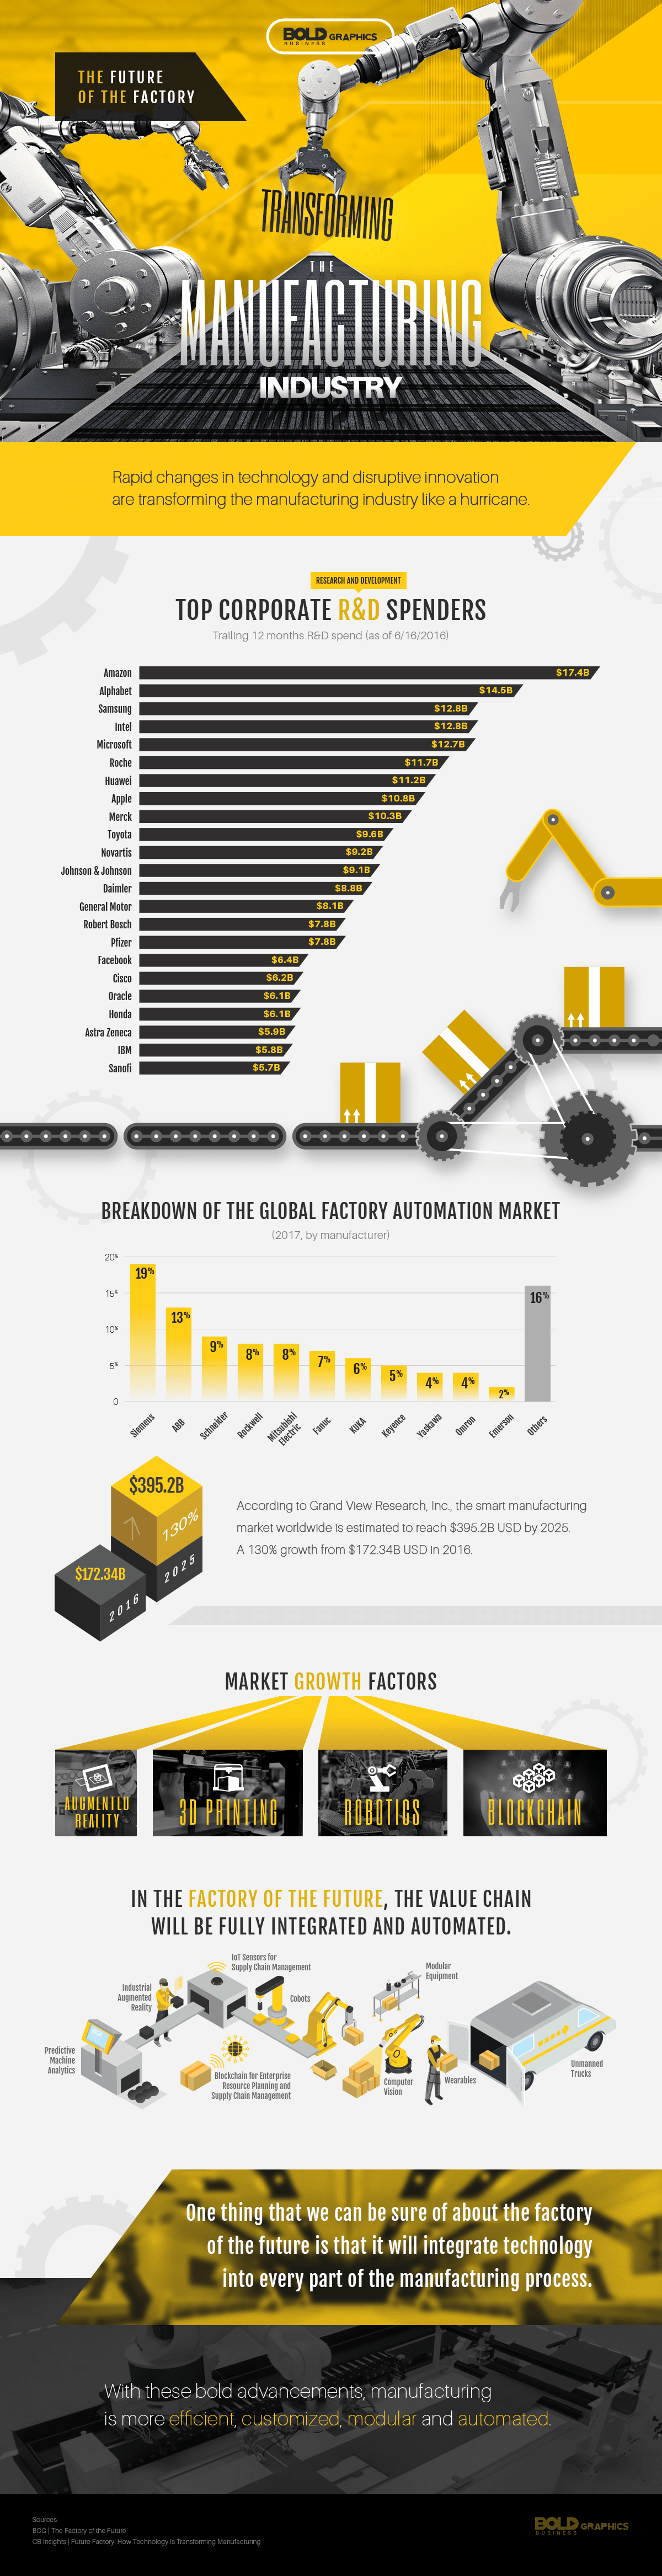 transforming the manufacturing industry infographic